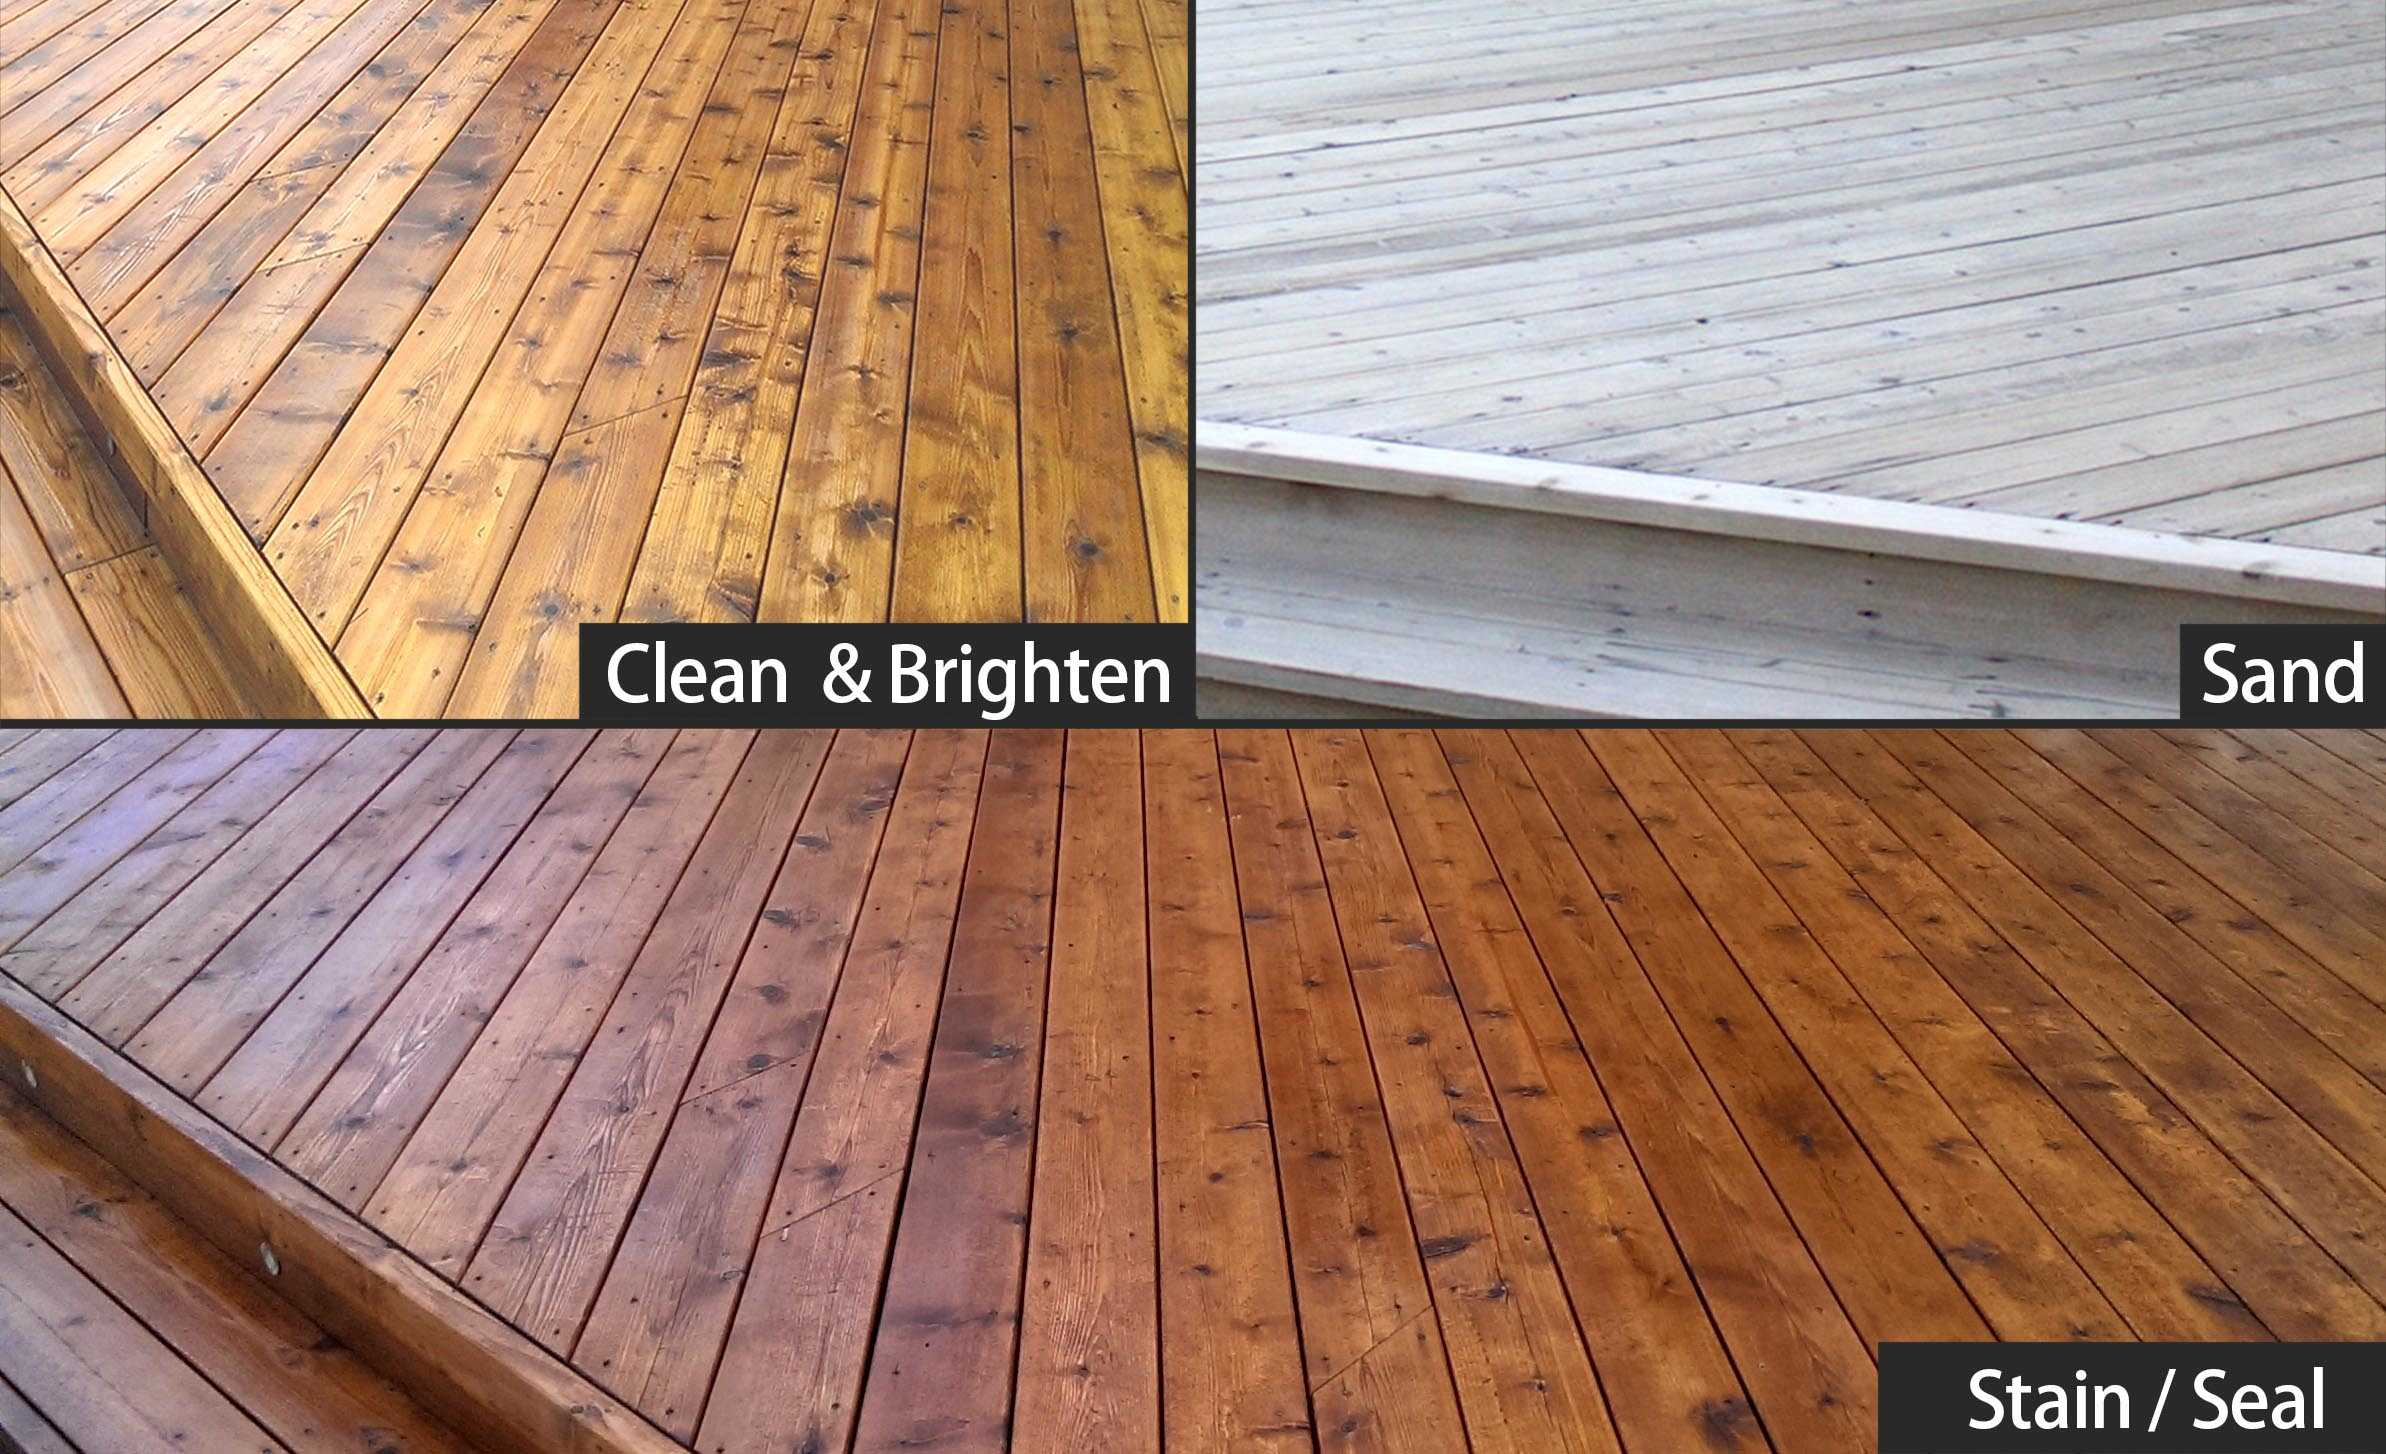 3 stages clean brighten sanding and sealing